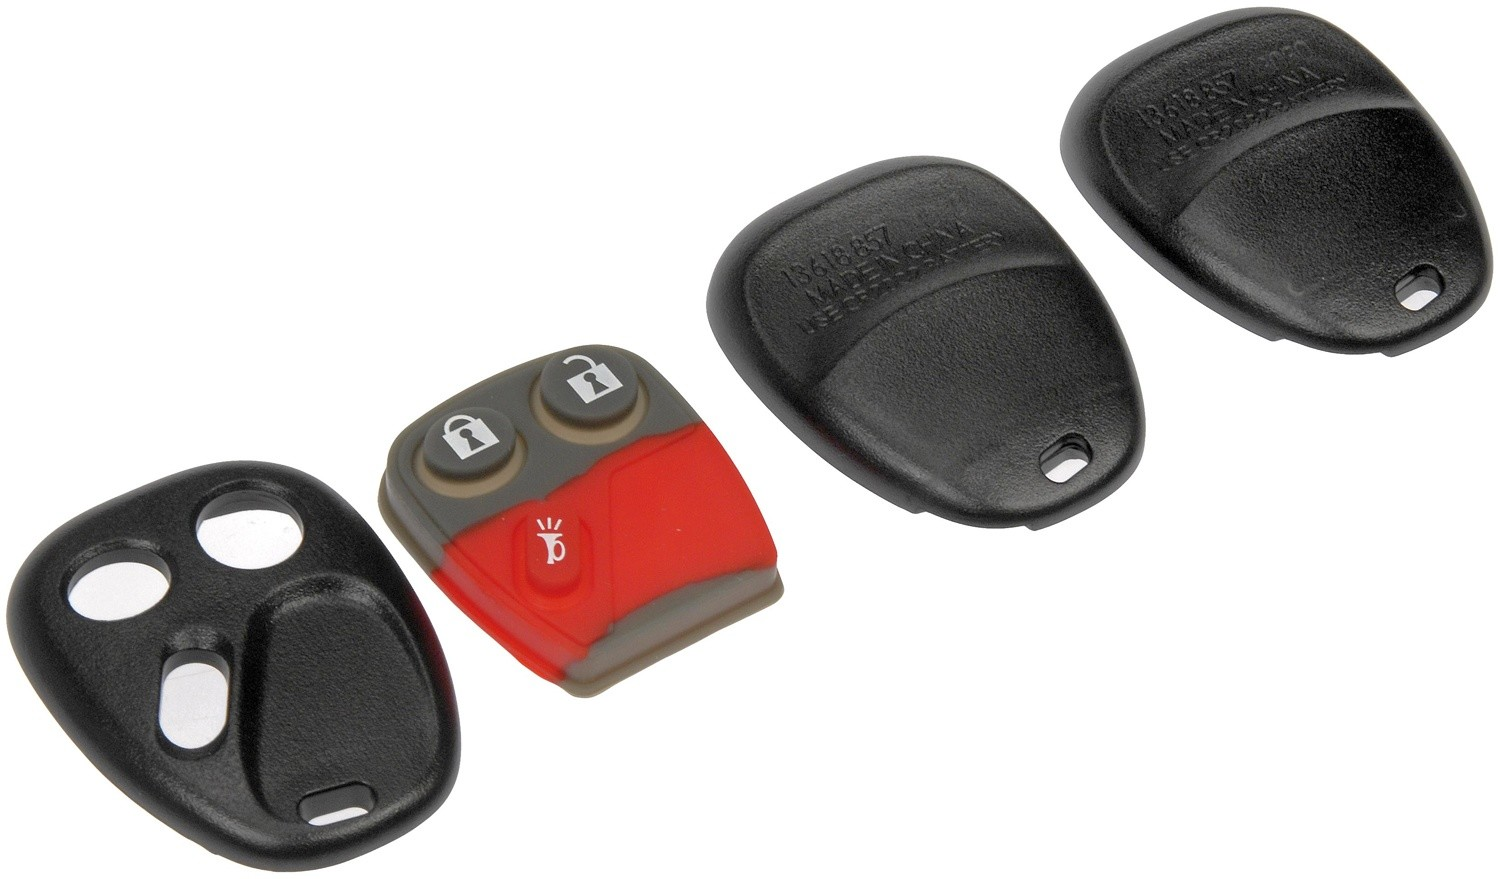 DORMAN - HELP - Keyless Remote Case - RNB 13618